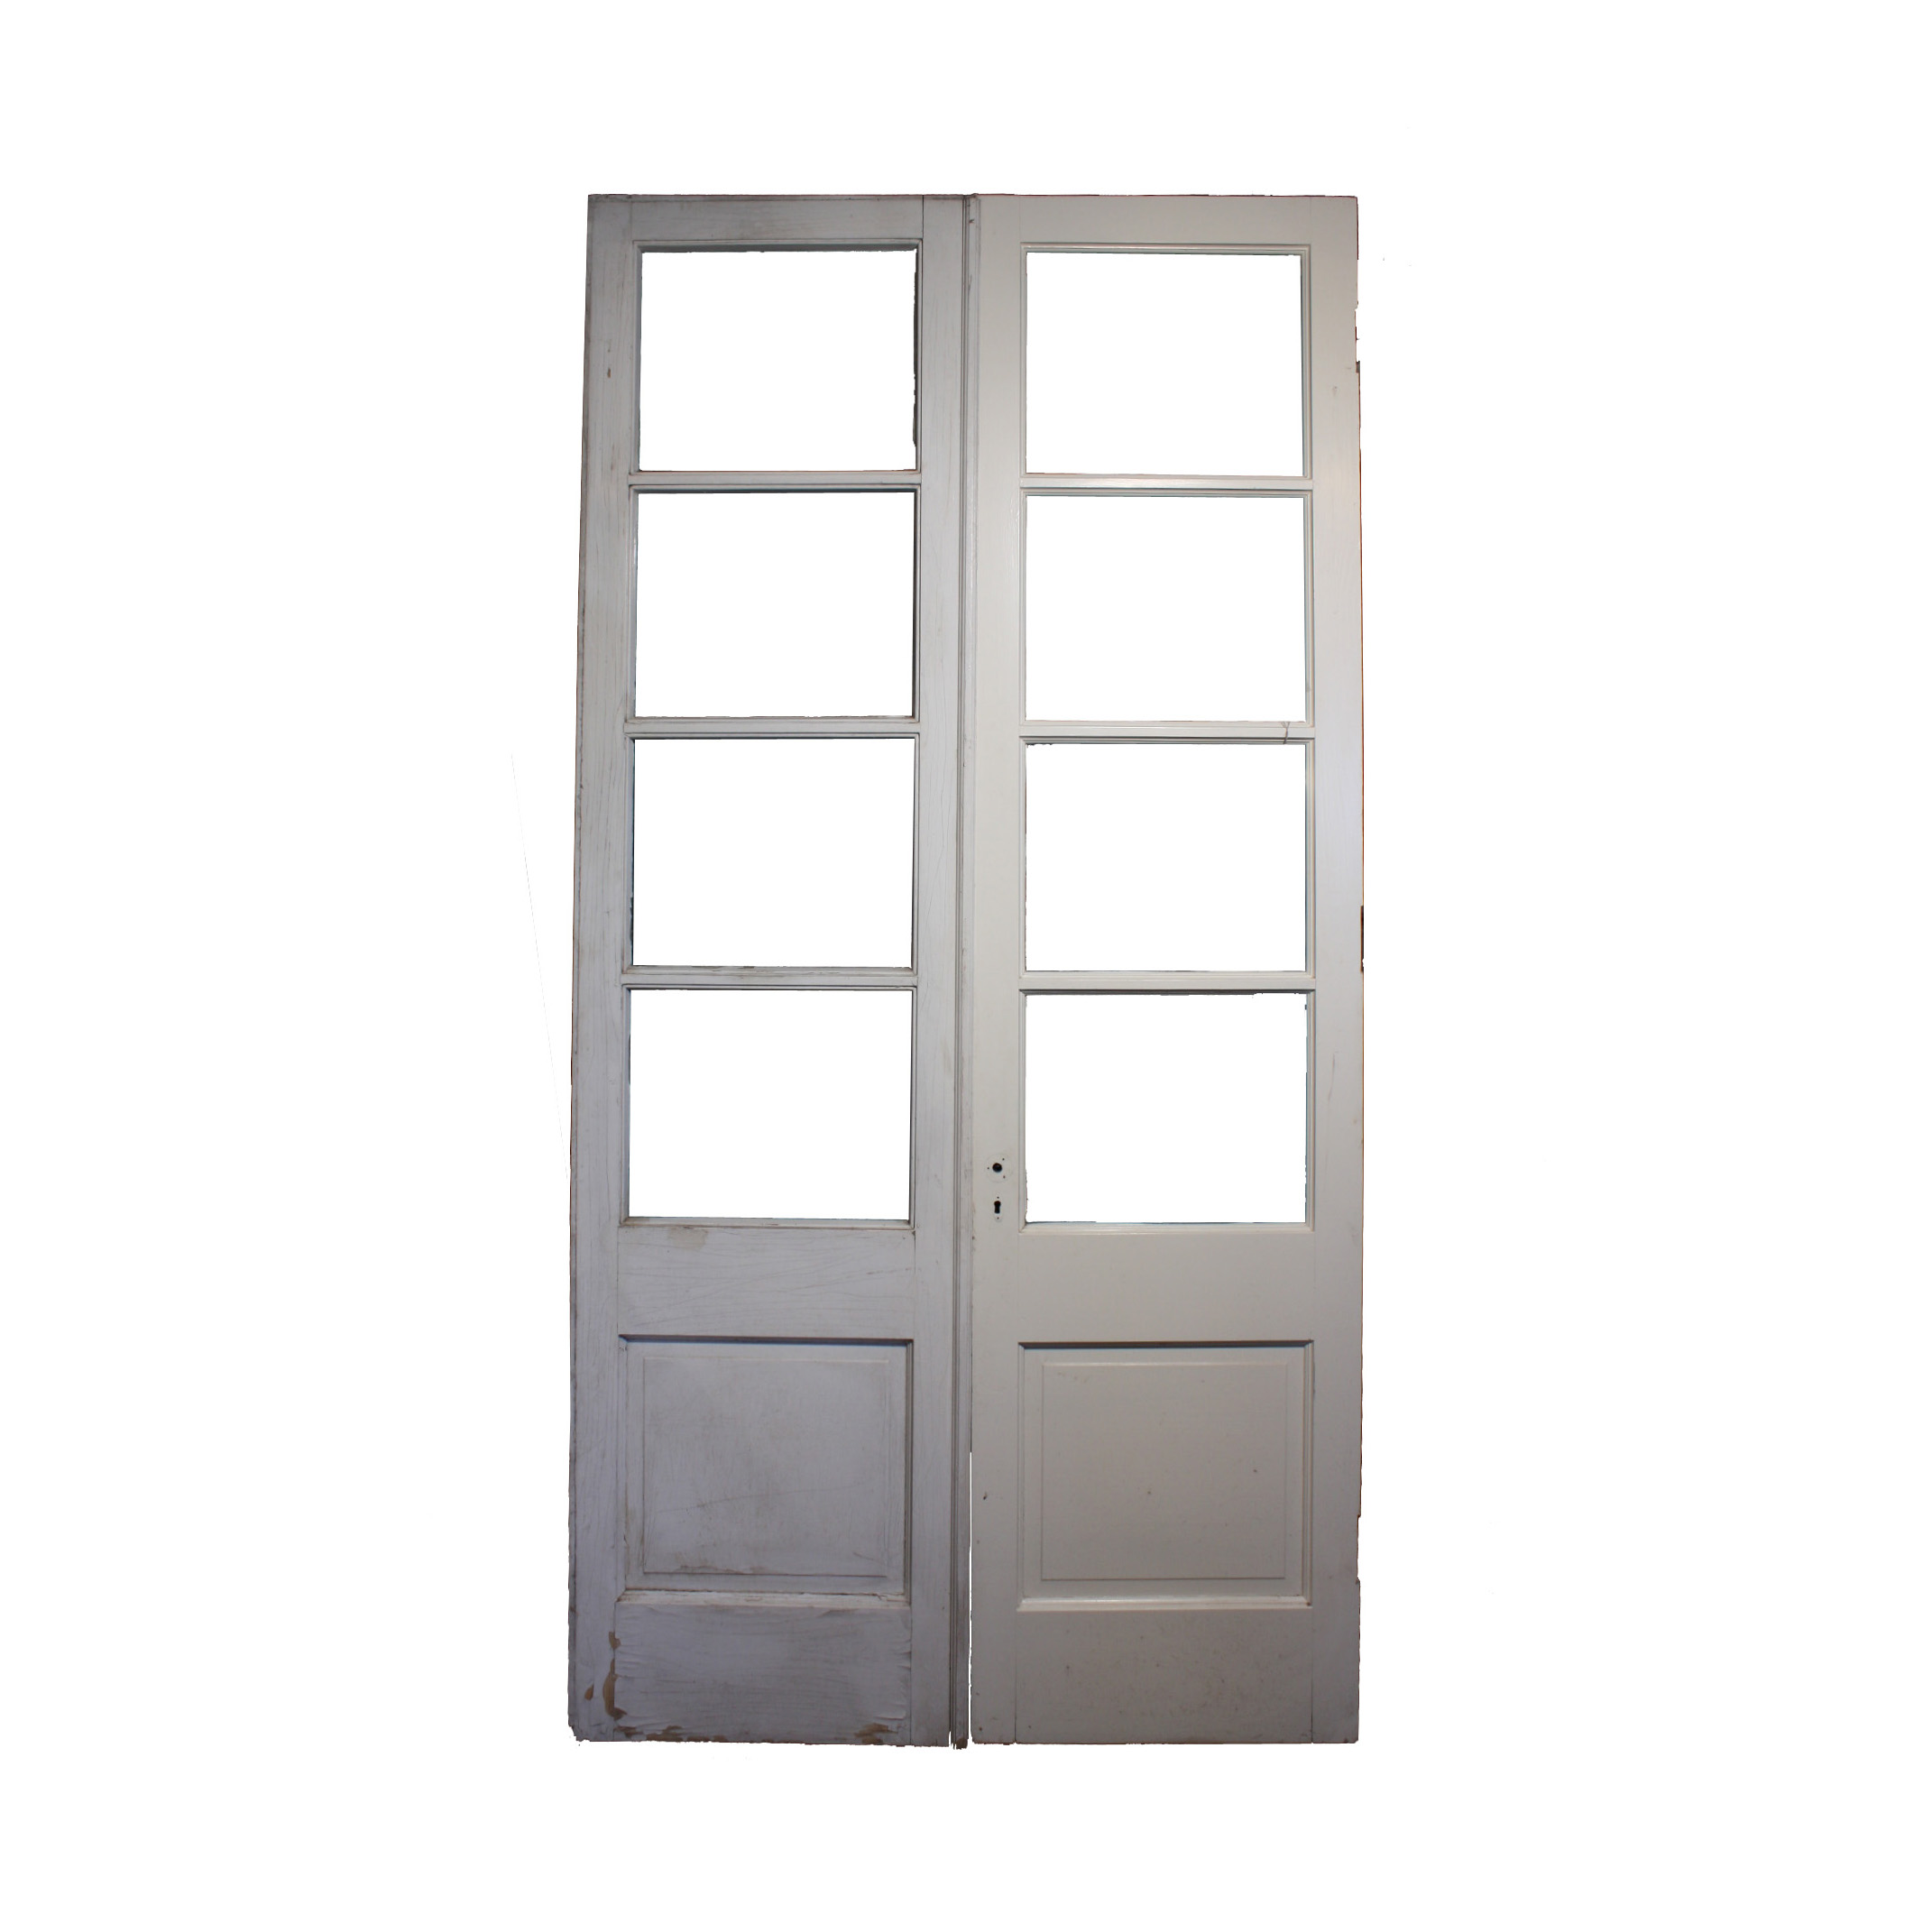 Reclaimed pair of antique french double doors ned188 rw for Double french doors for sale